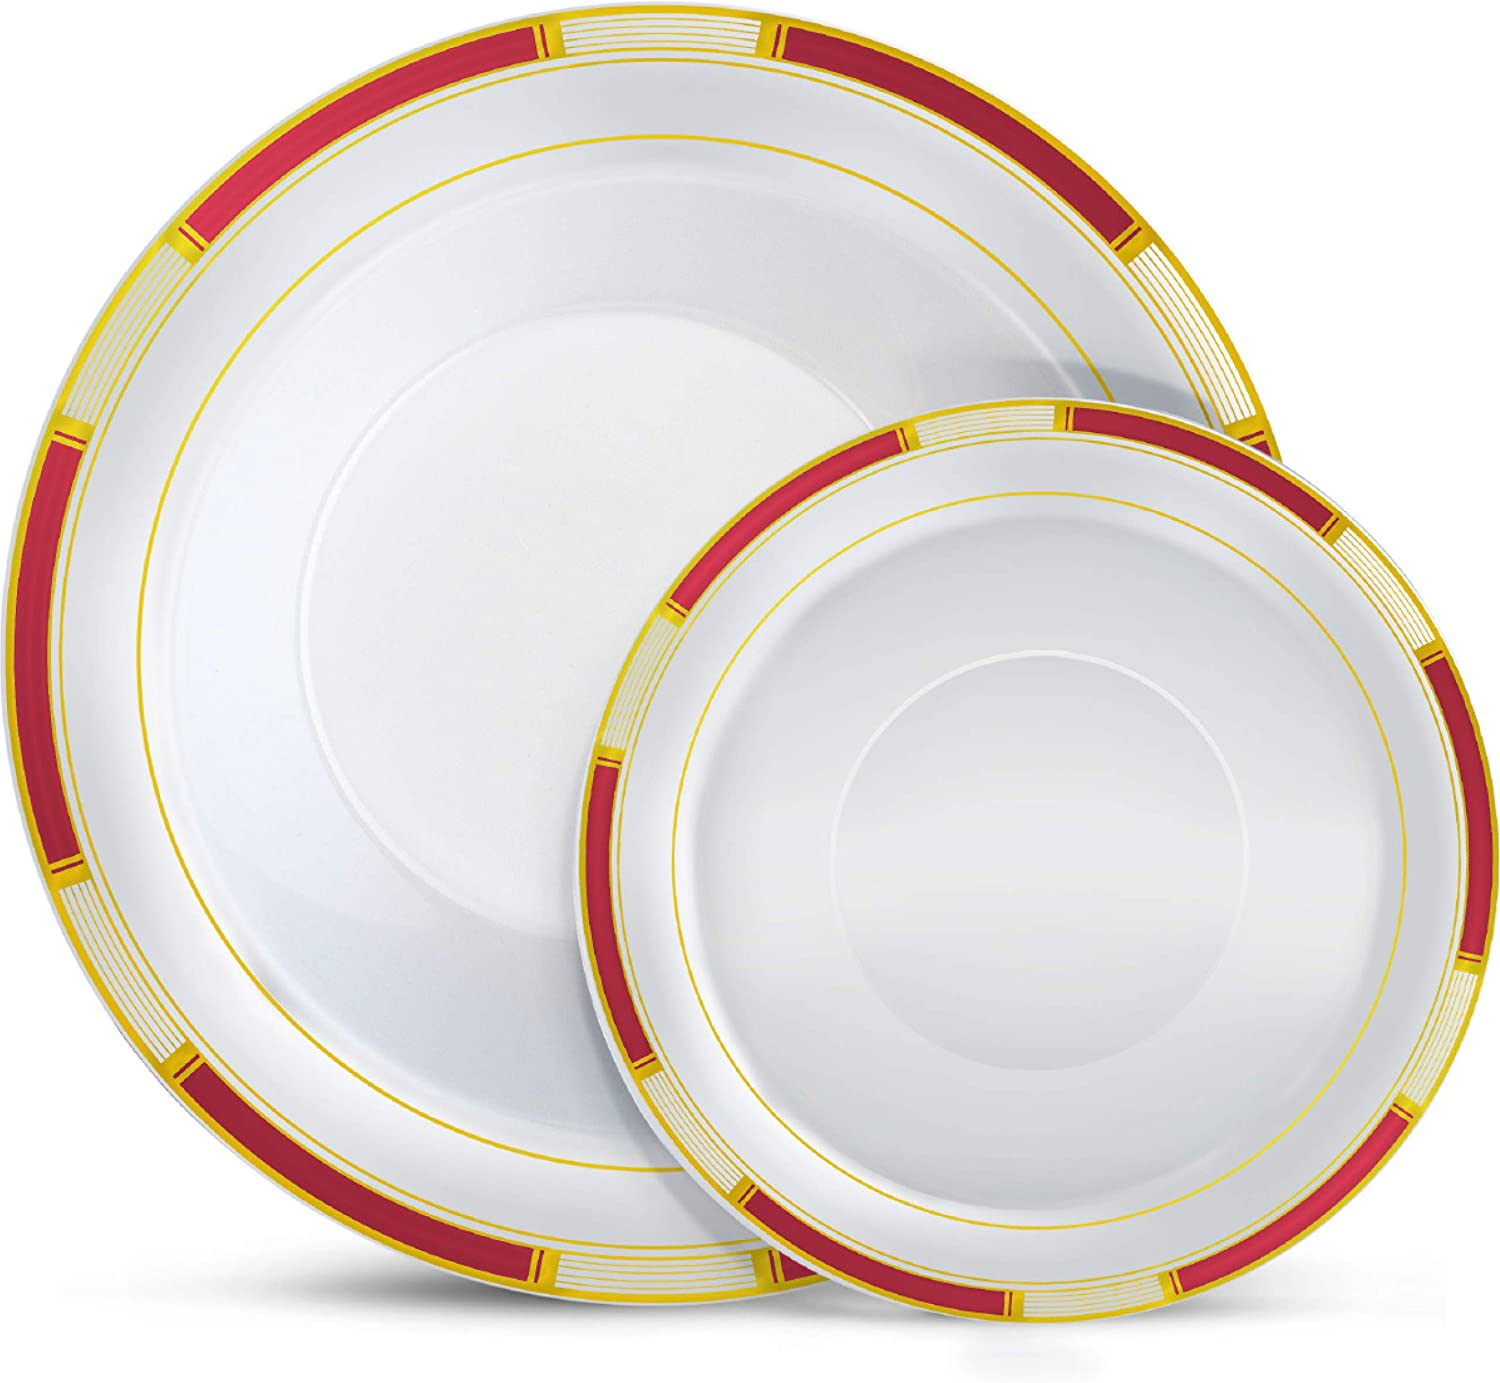 Laura Spring new work one after another Stein Japan's largest assortment Designer Dinnerware Set Disposable Plastic Part 32